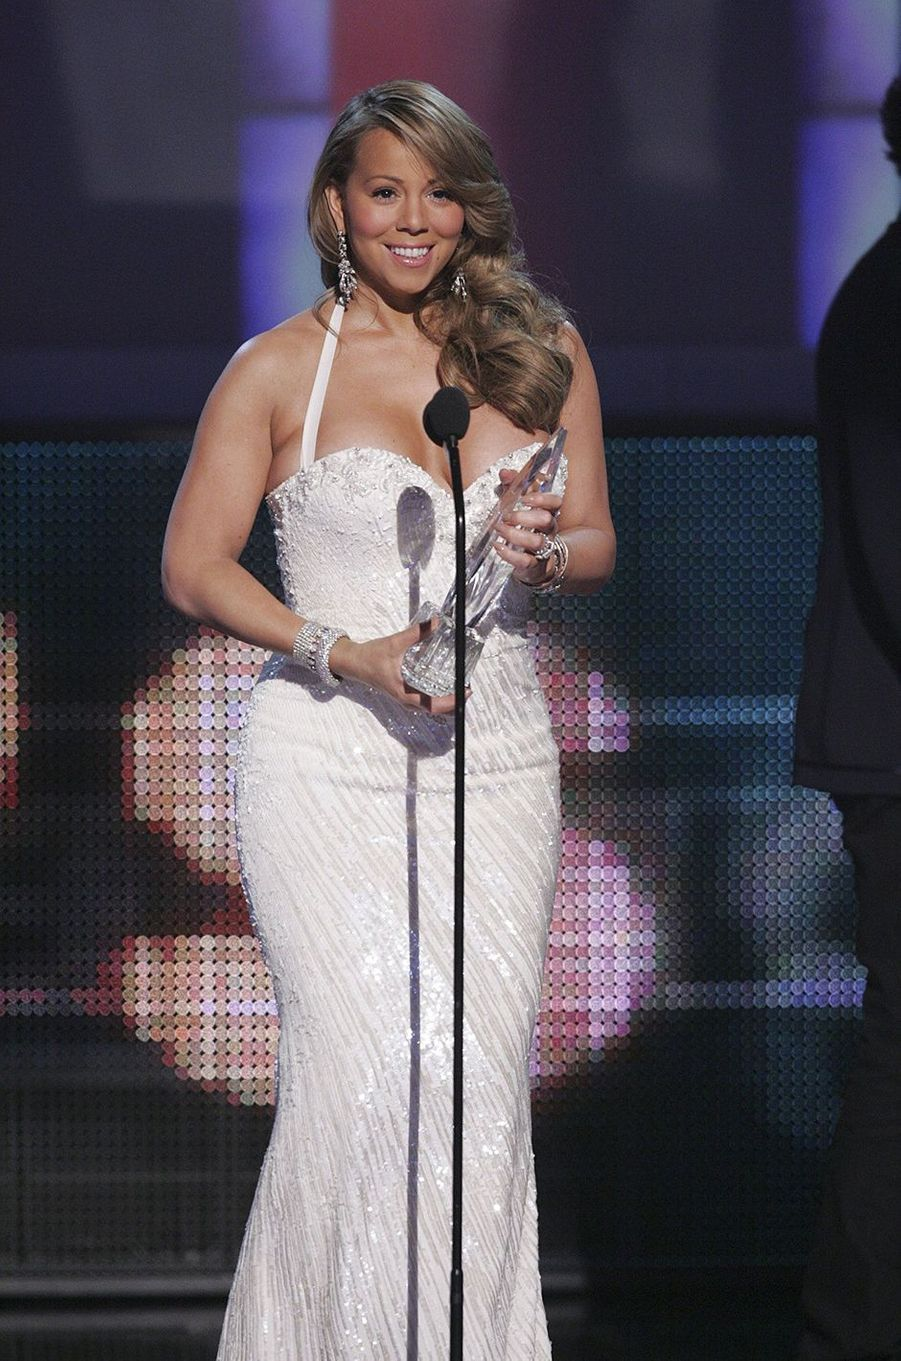 Mariah Carey sacrée lors des People's Choice Awards à Los Angeles le 6 janvier 2010